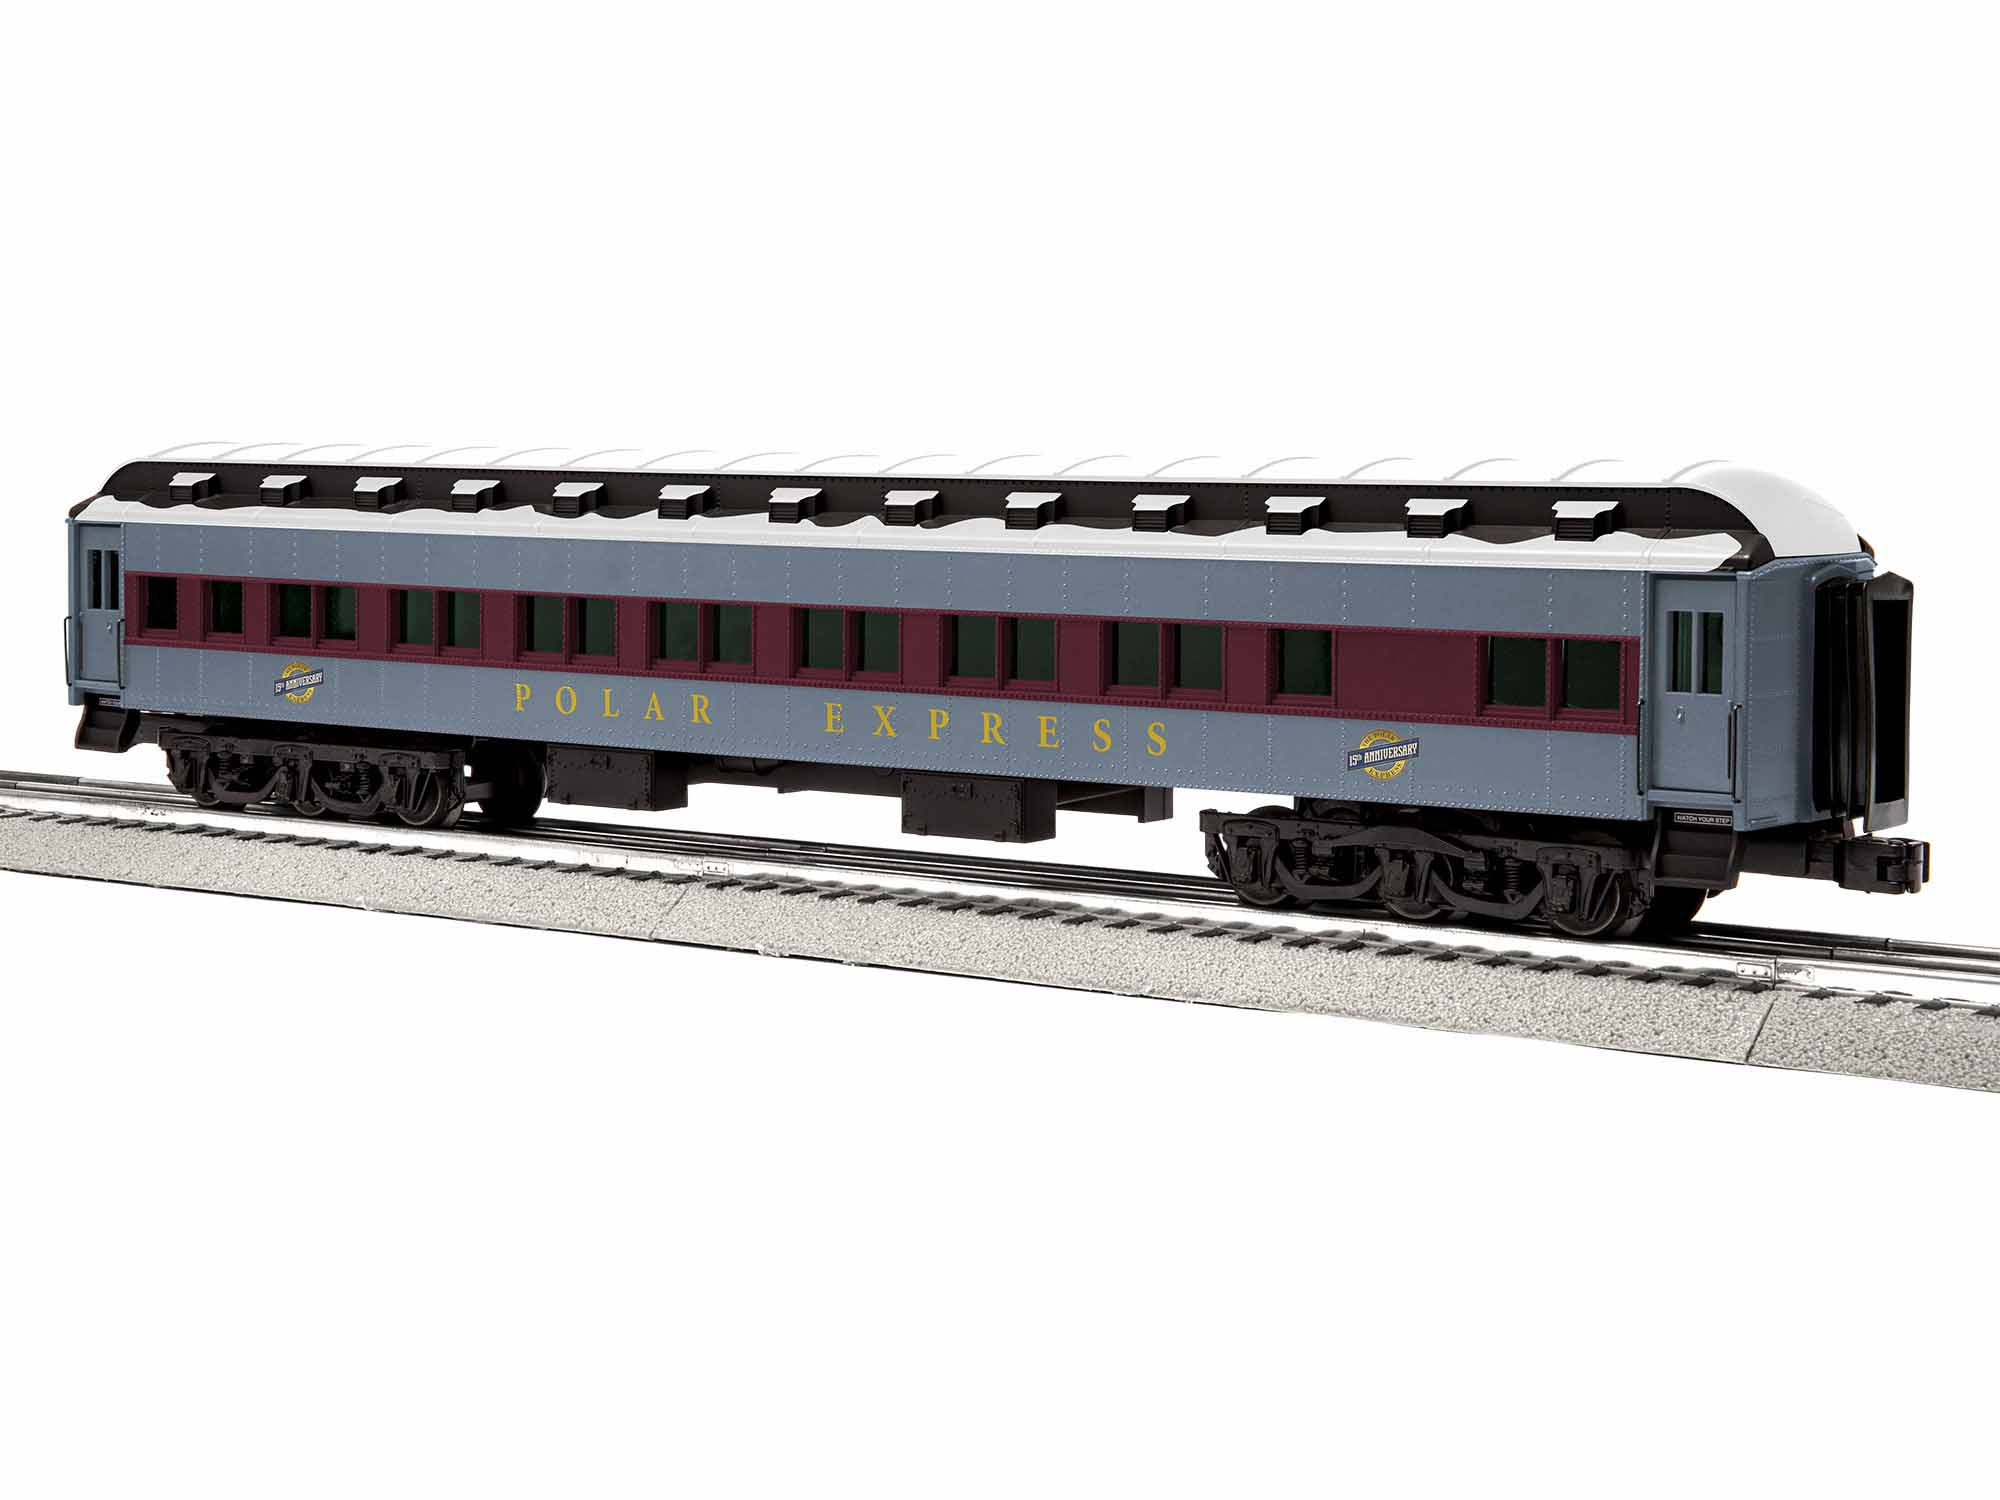 Lionel 1927650 O 6-Axle Coach 3-Rail Polar Express 15th Anniversary Scheme